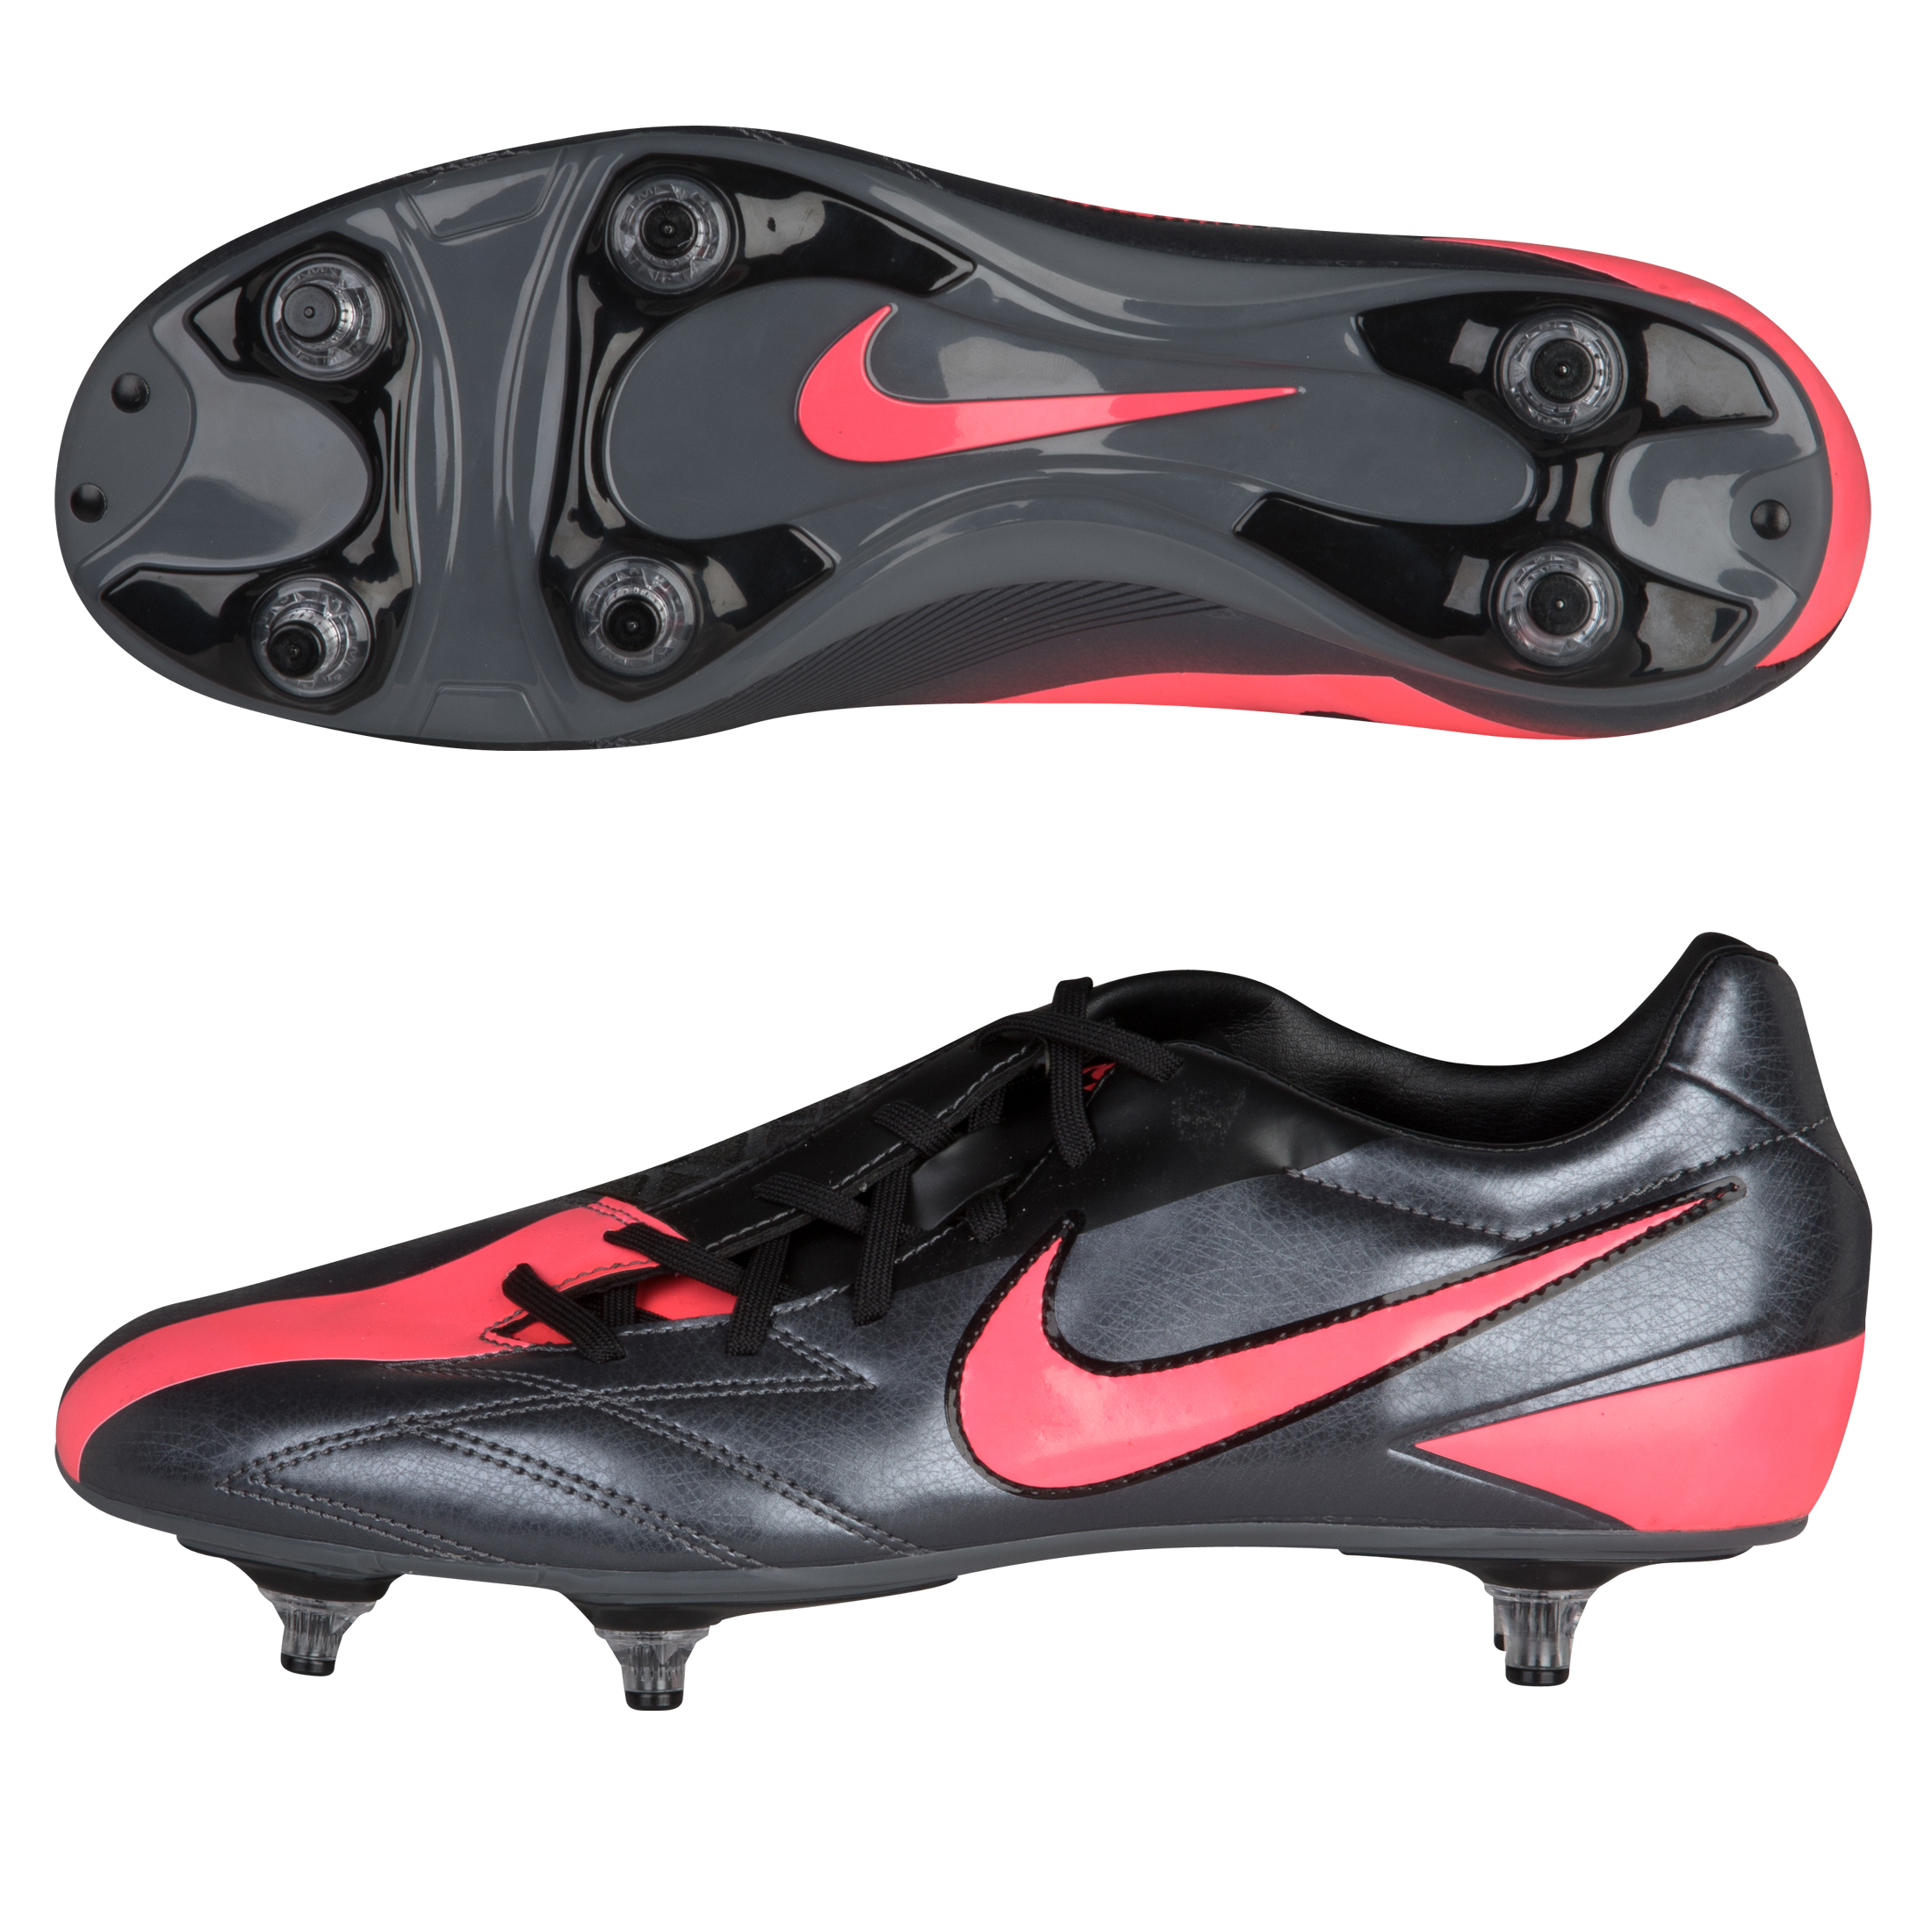 Nike T90 Shoot IV Soft Ground Football Boots - Dark Grey/Solar Red/Black